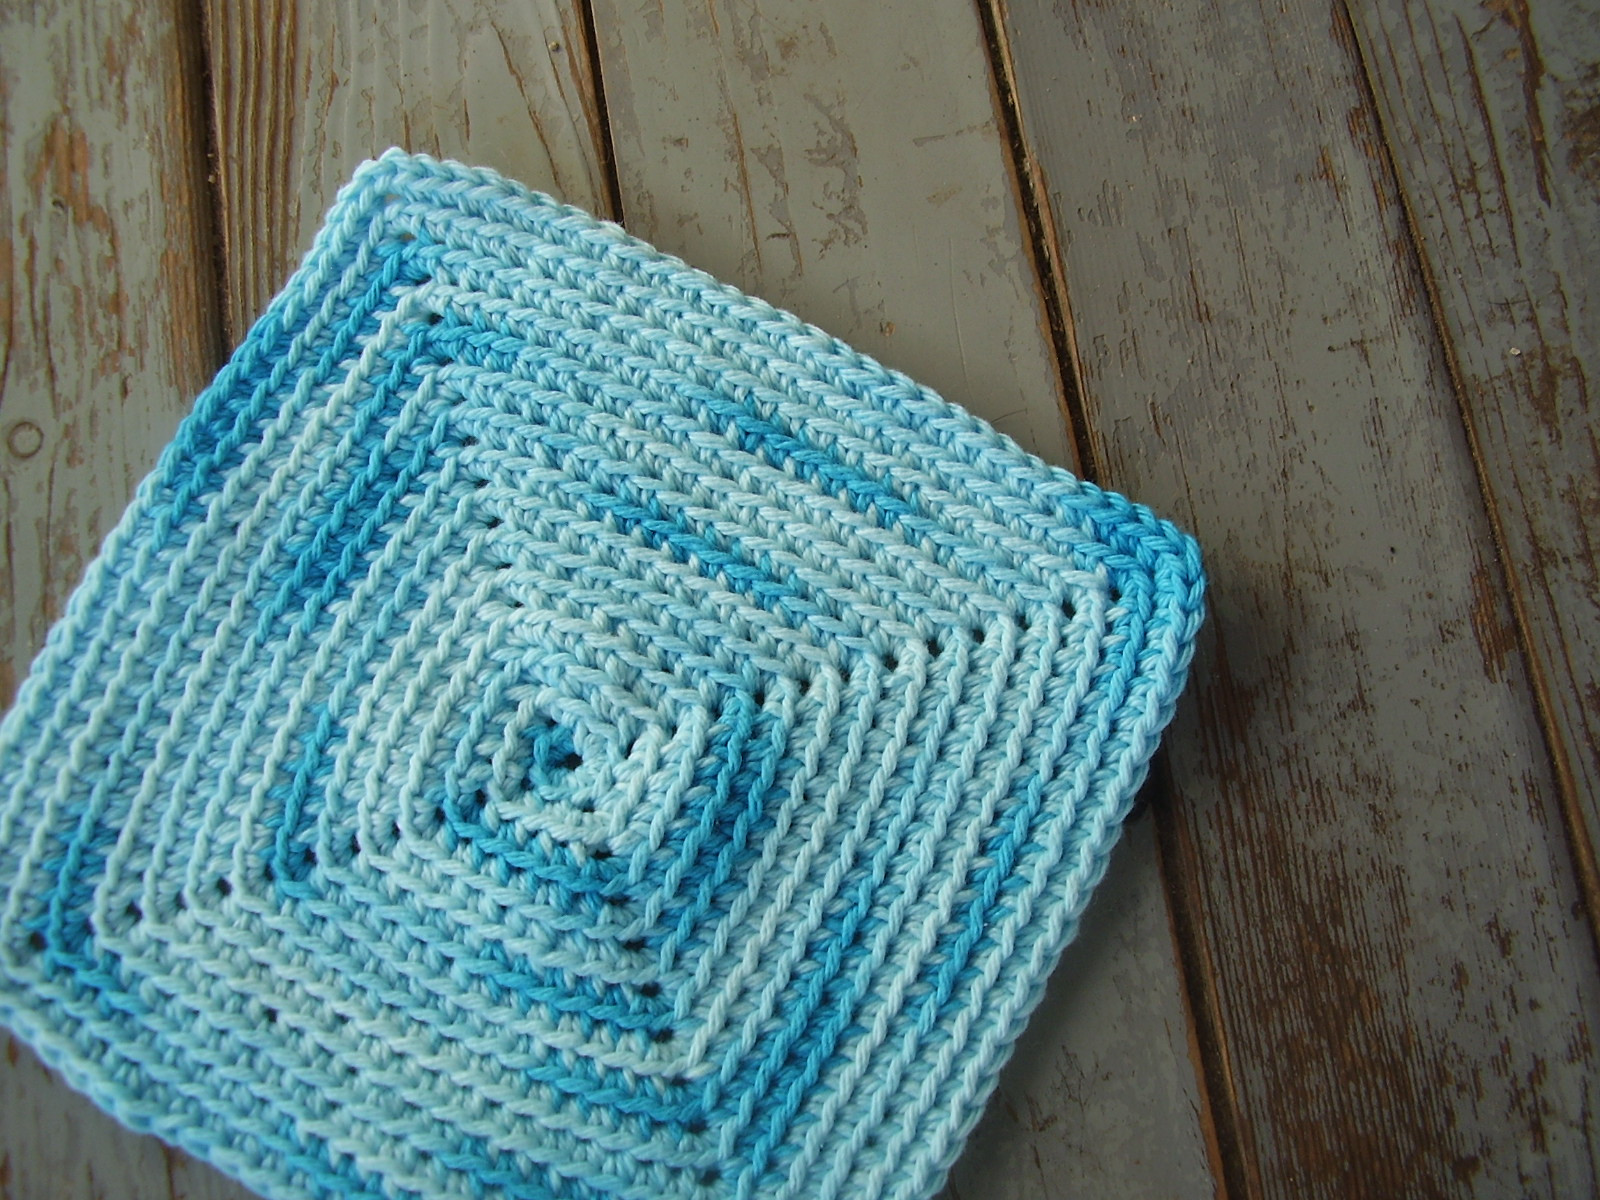 I Love This Cotton Yarn Crochet Patterns Unique Free Pattern Crocheted Square Washcloth Of Delightful 43 Ideas I Love This Cotton Yarn Crochet Patterns